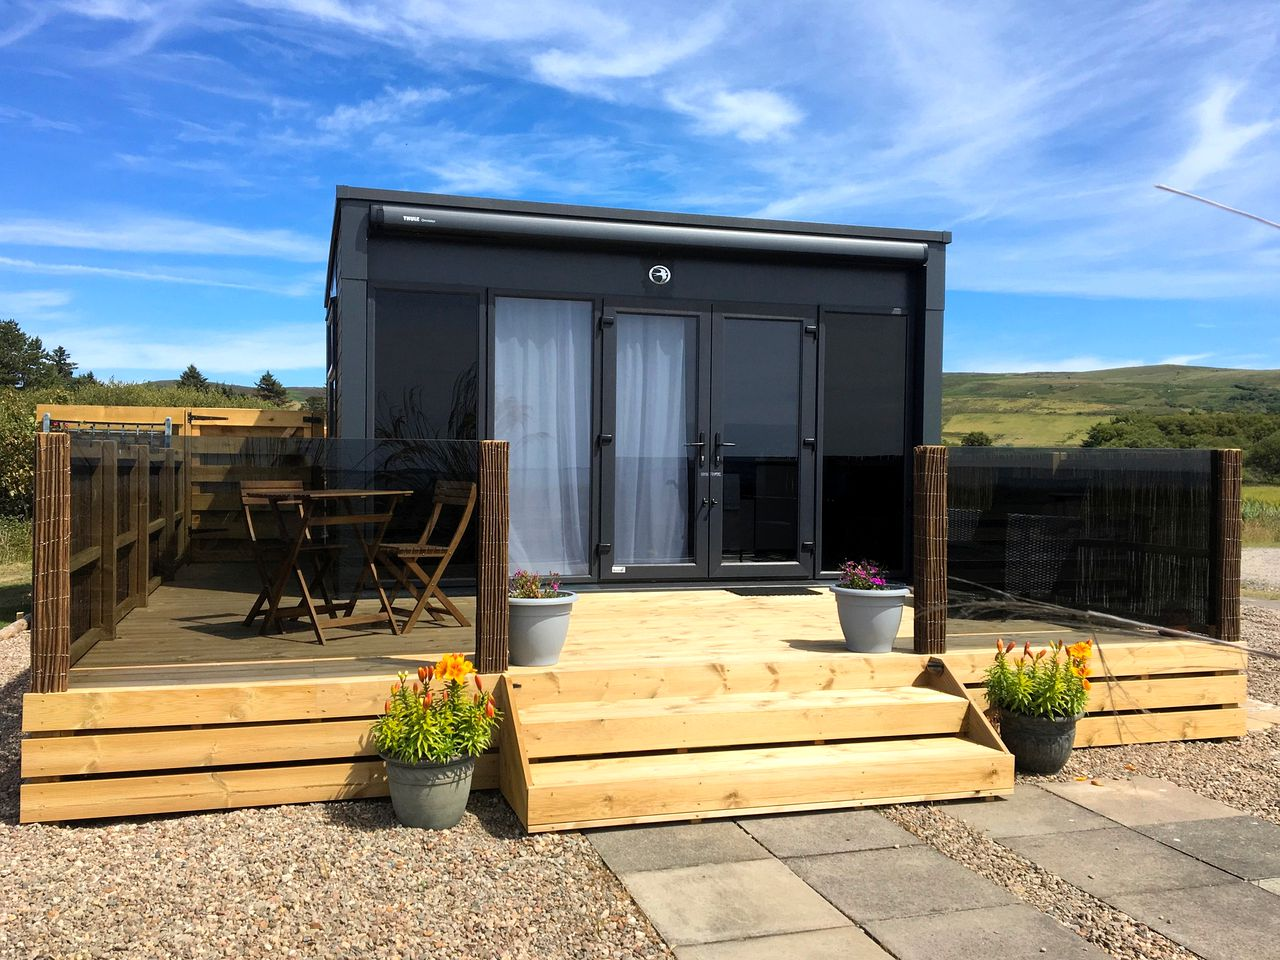 Tiny house rental with hot tub in Argyll, Scotland.